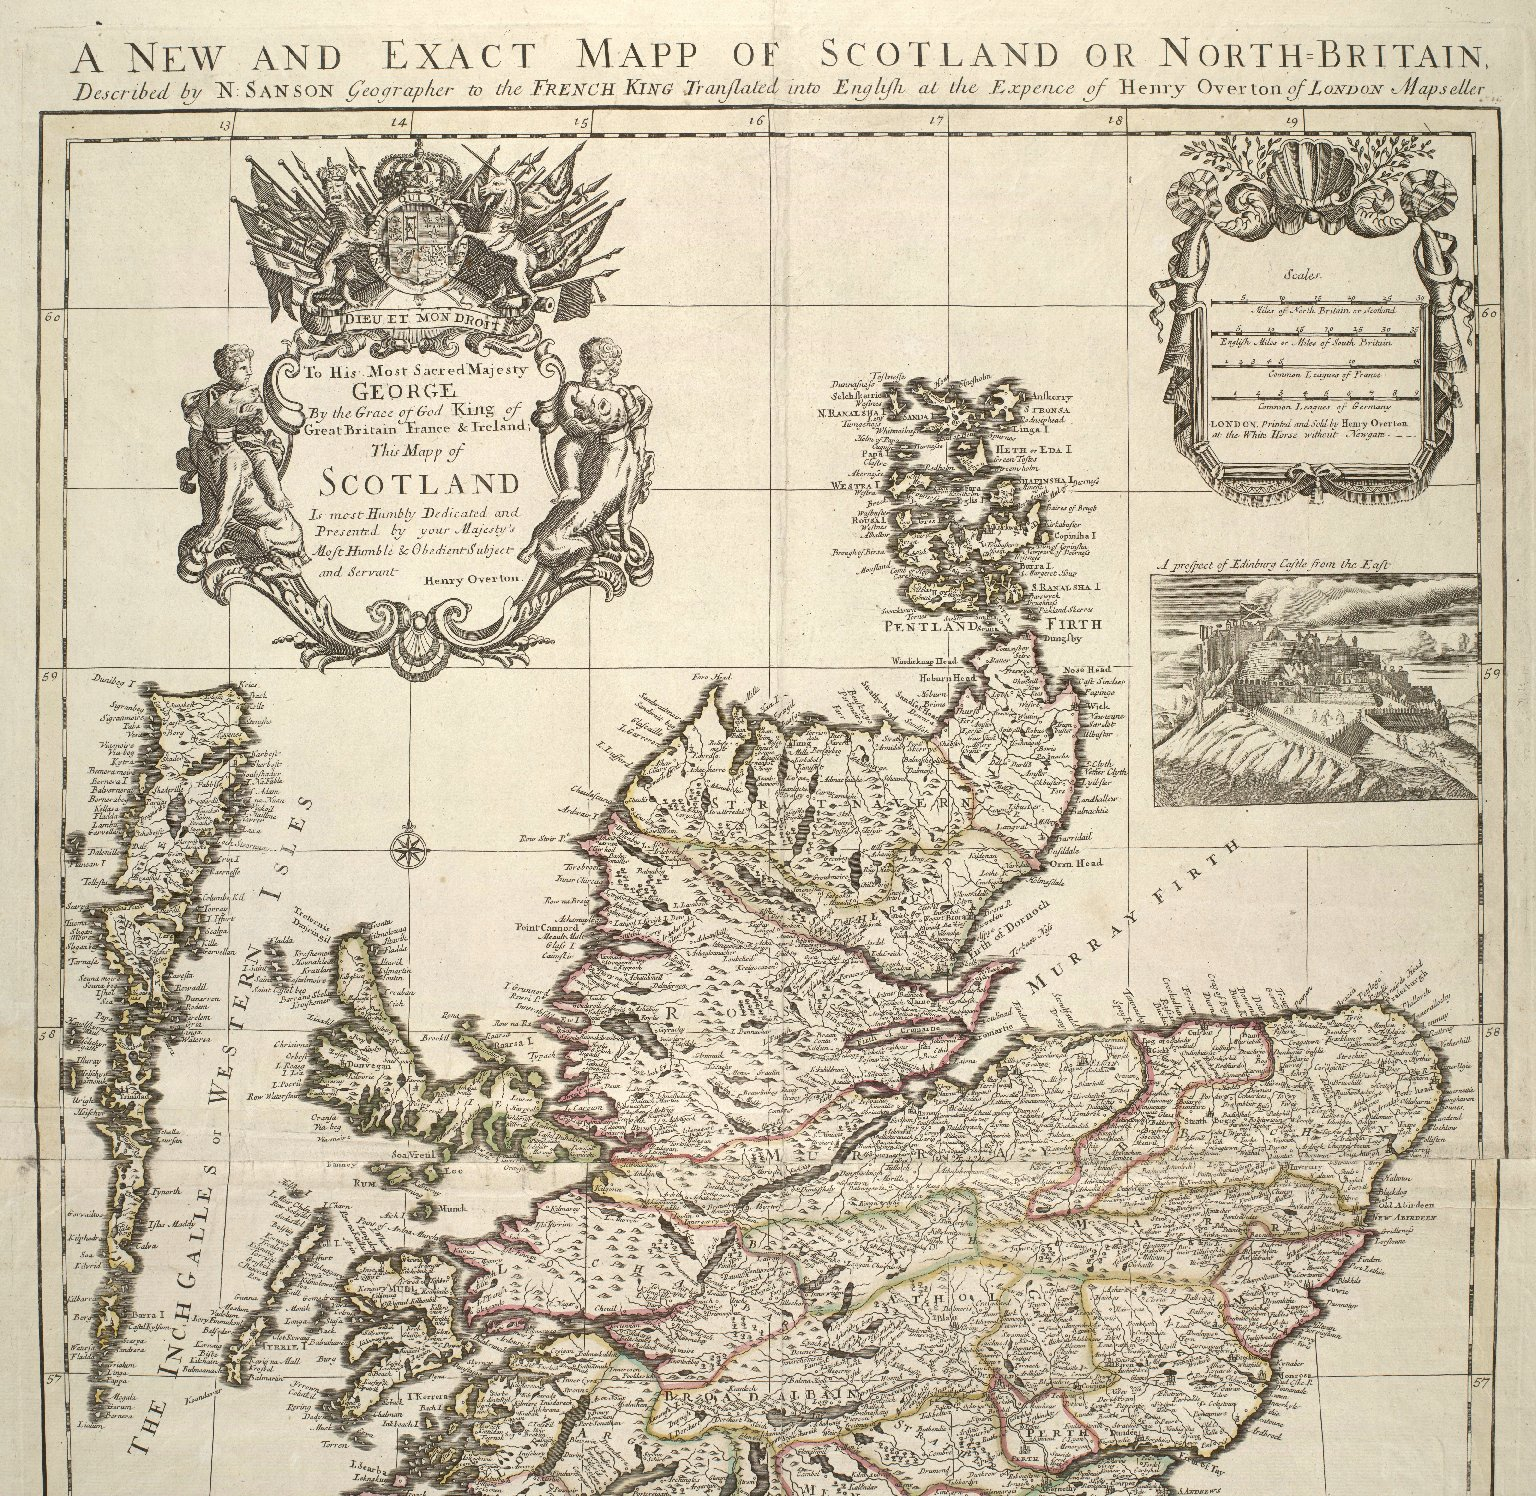 A new and exact mapp of Scotland, or North Britain [2 of 2]